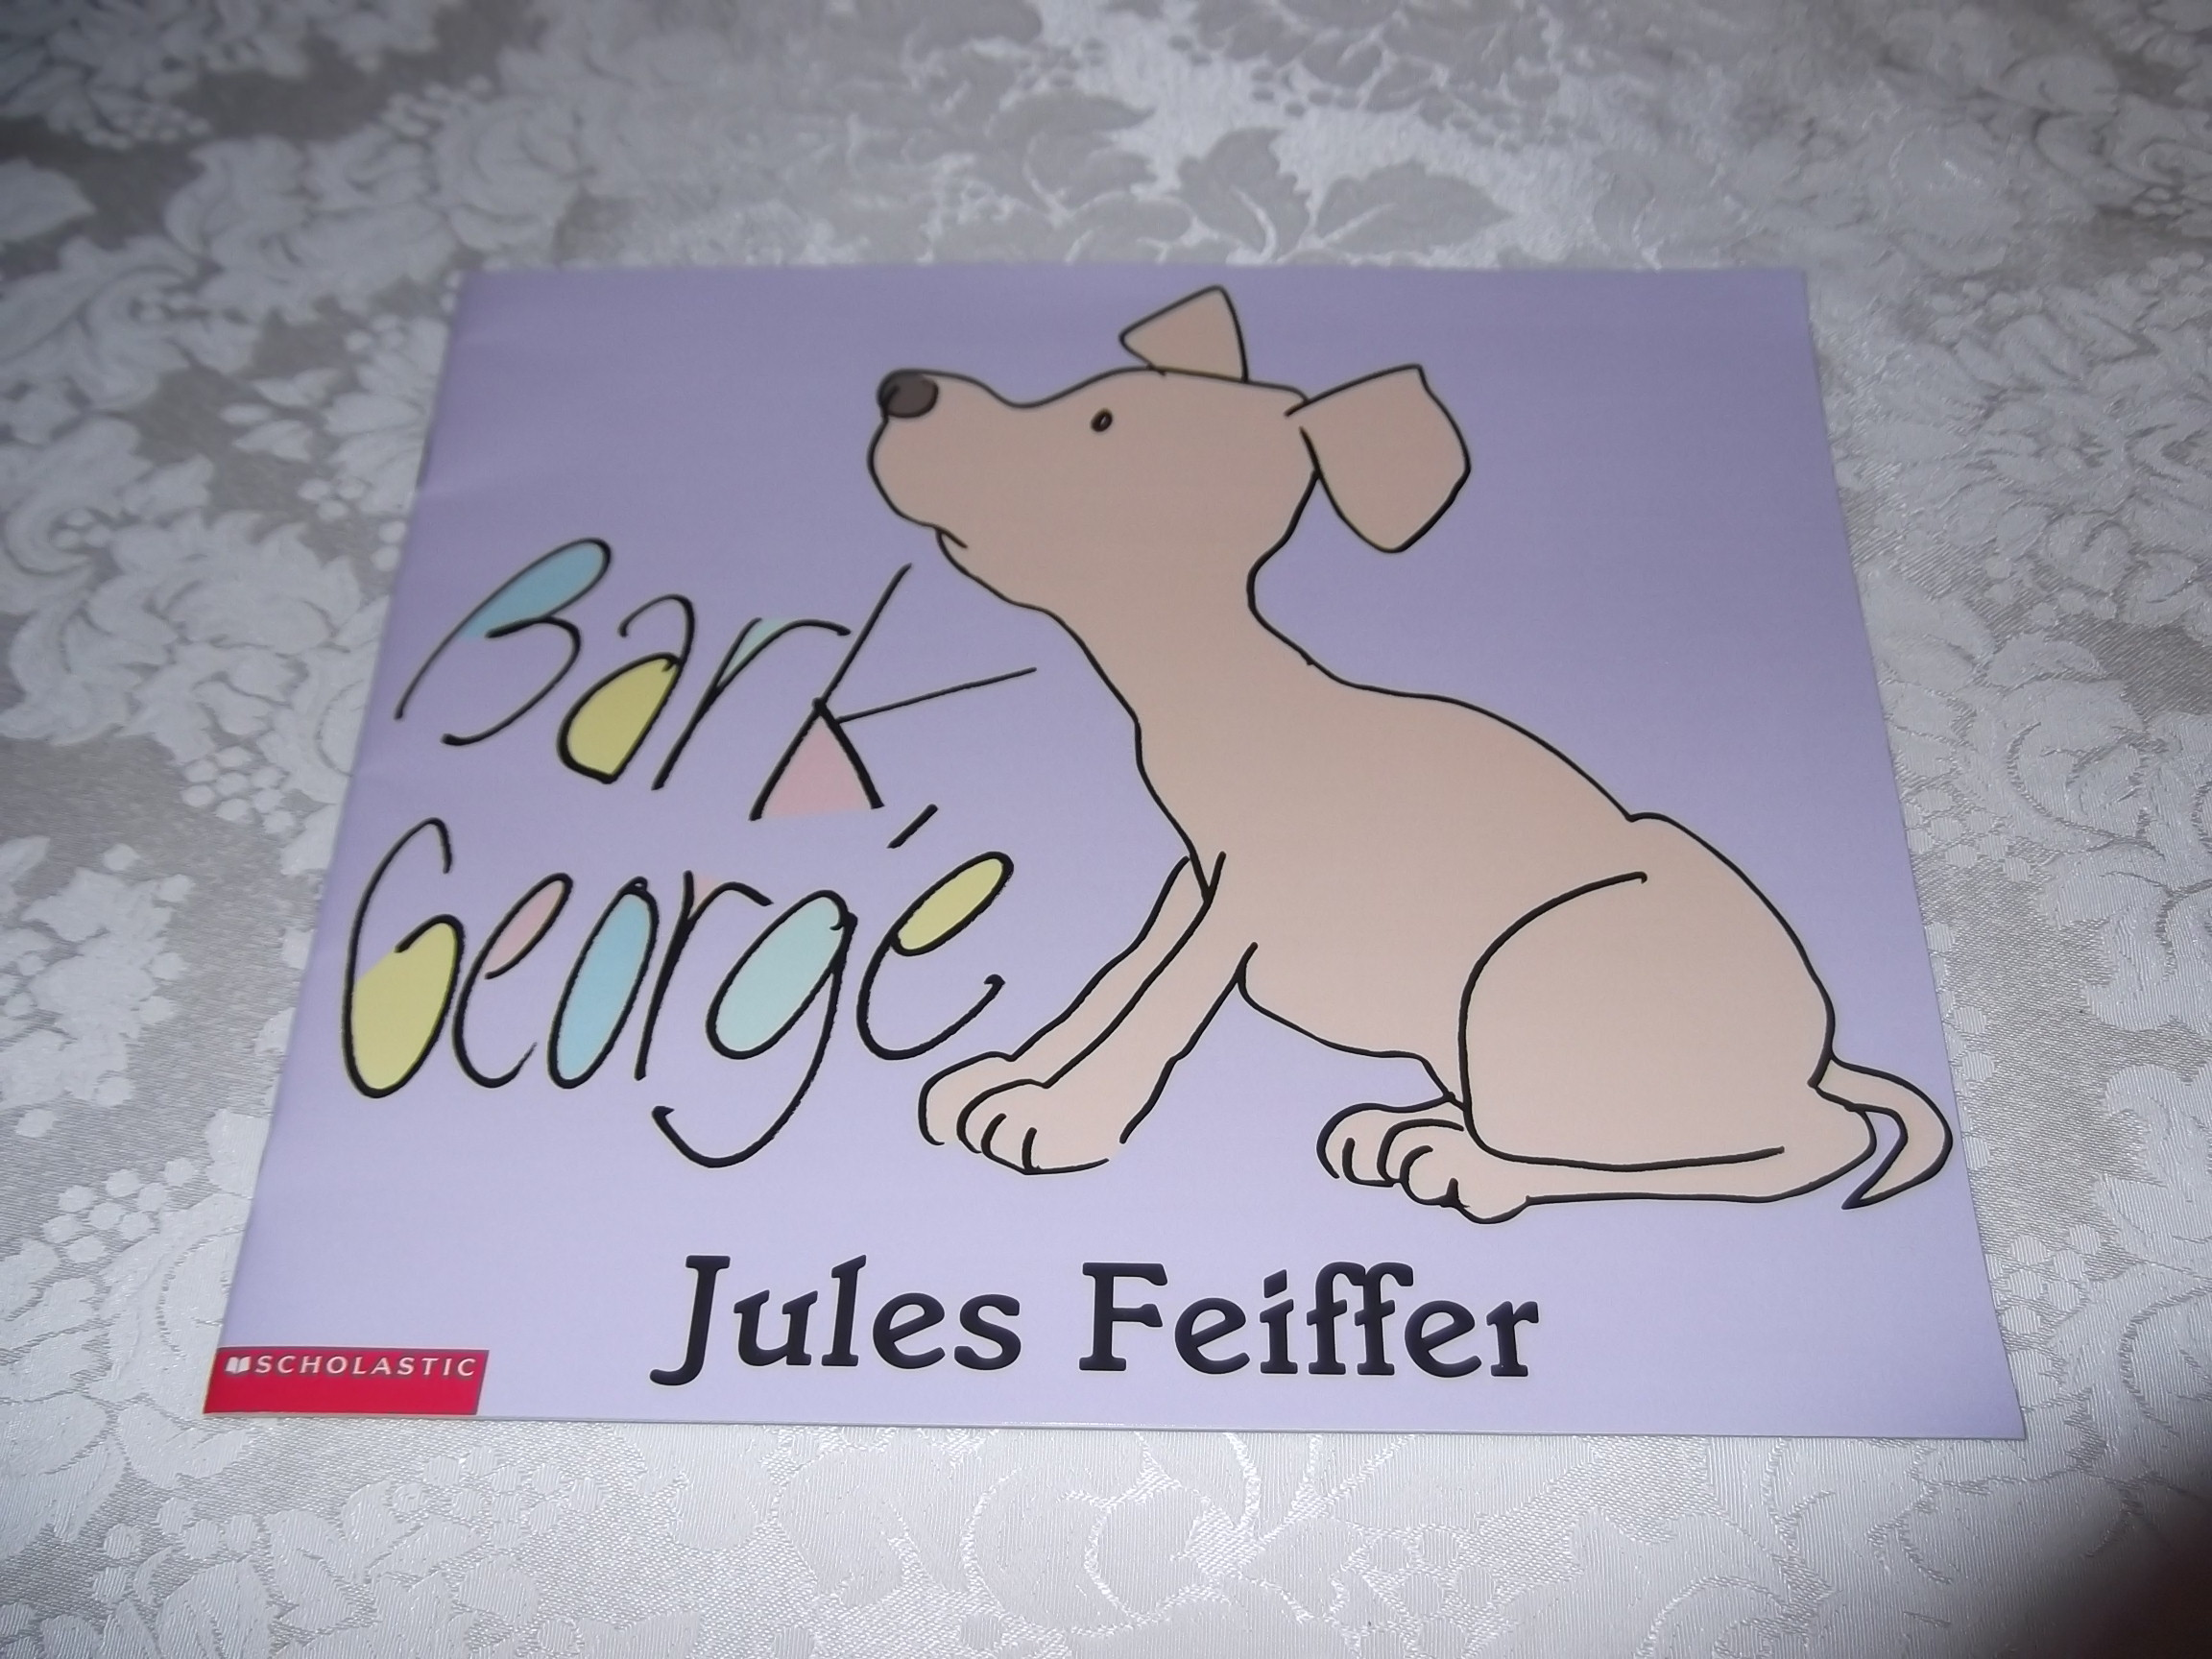 Bark, George Jules Feiffer Brand New Softcover